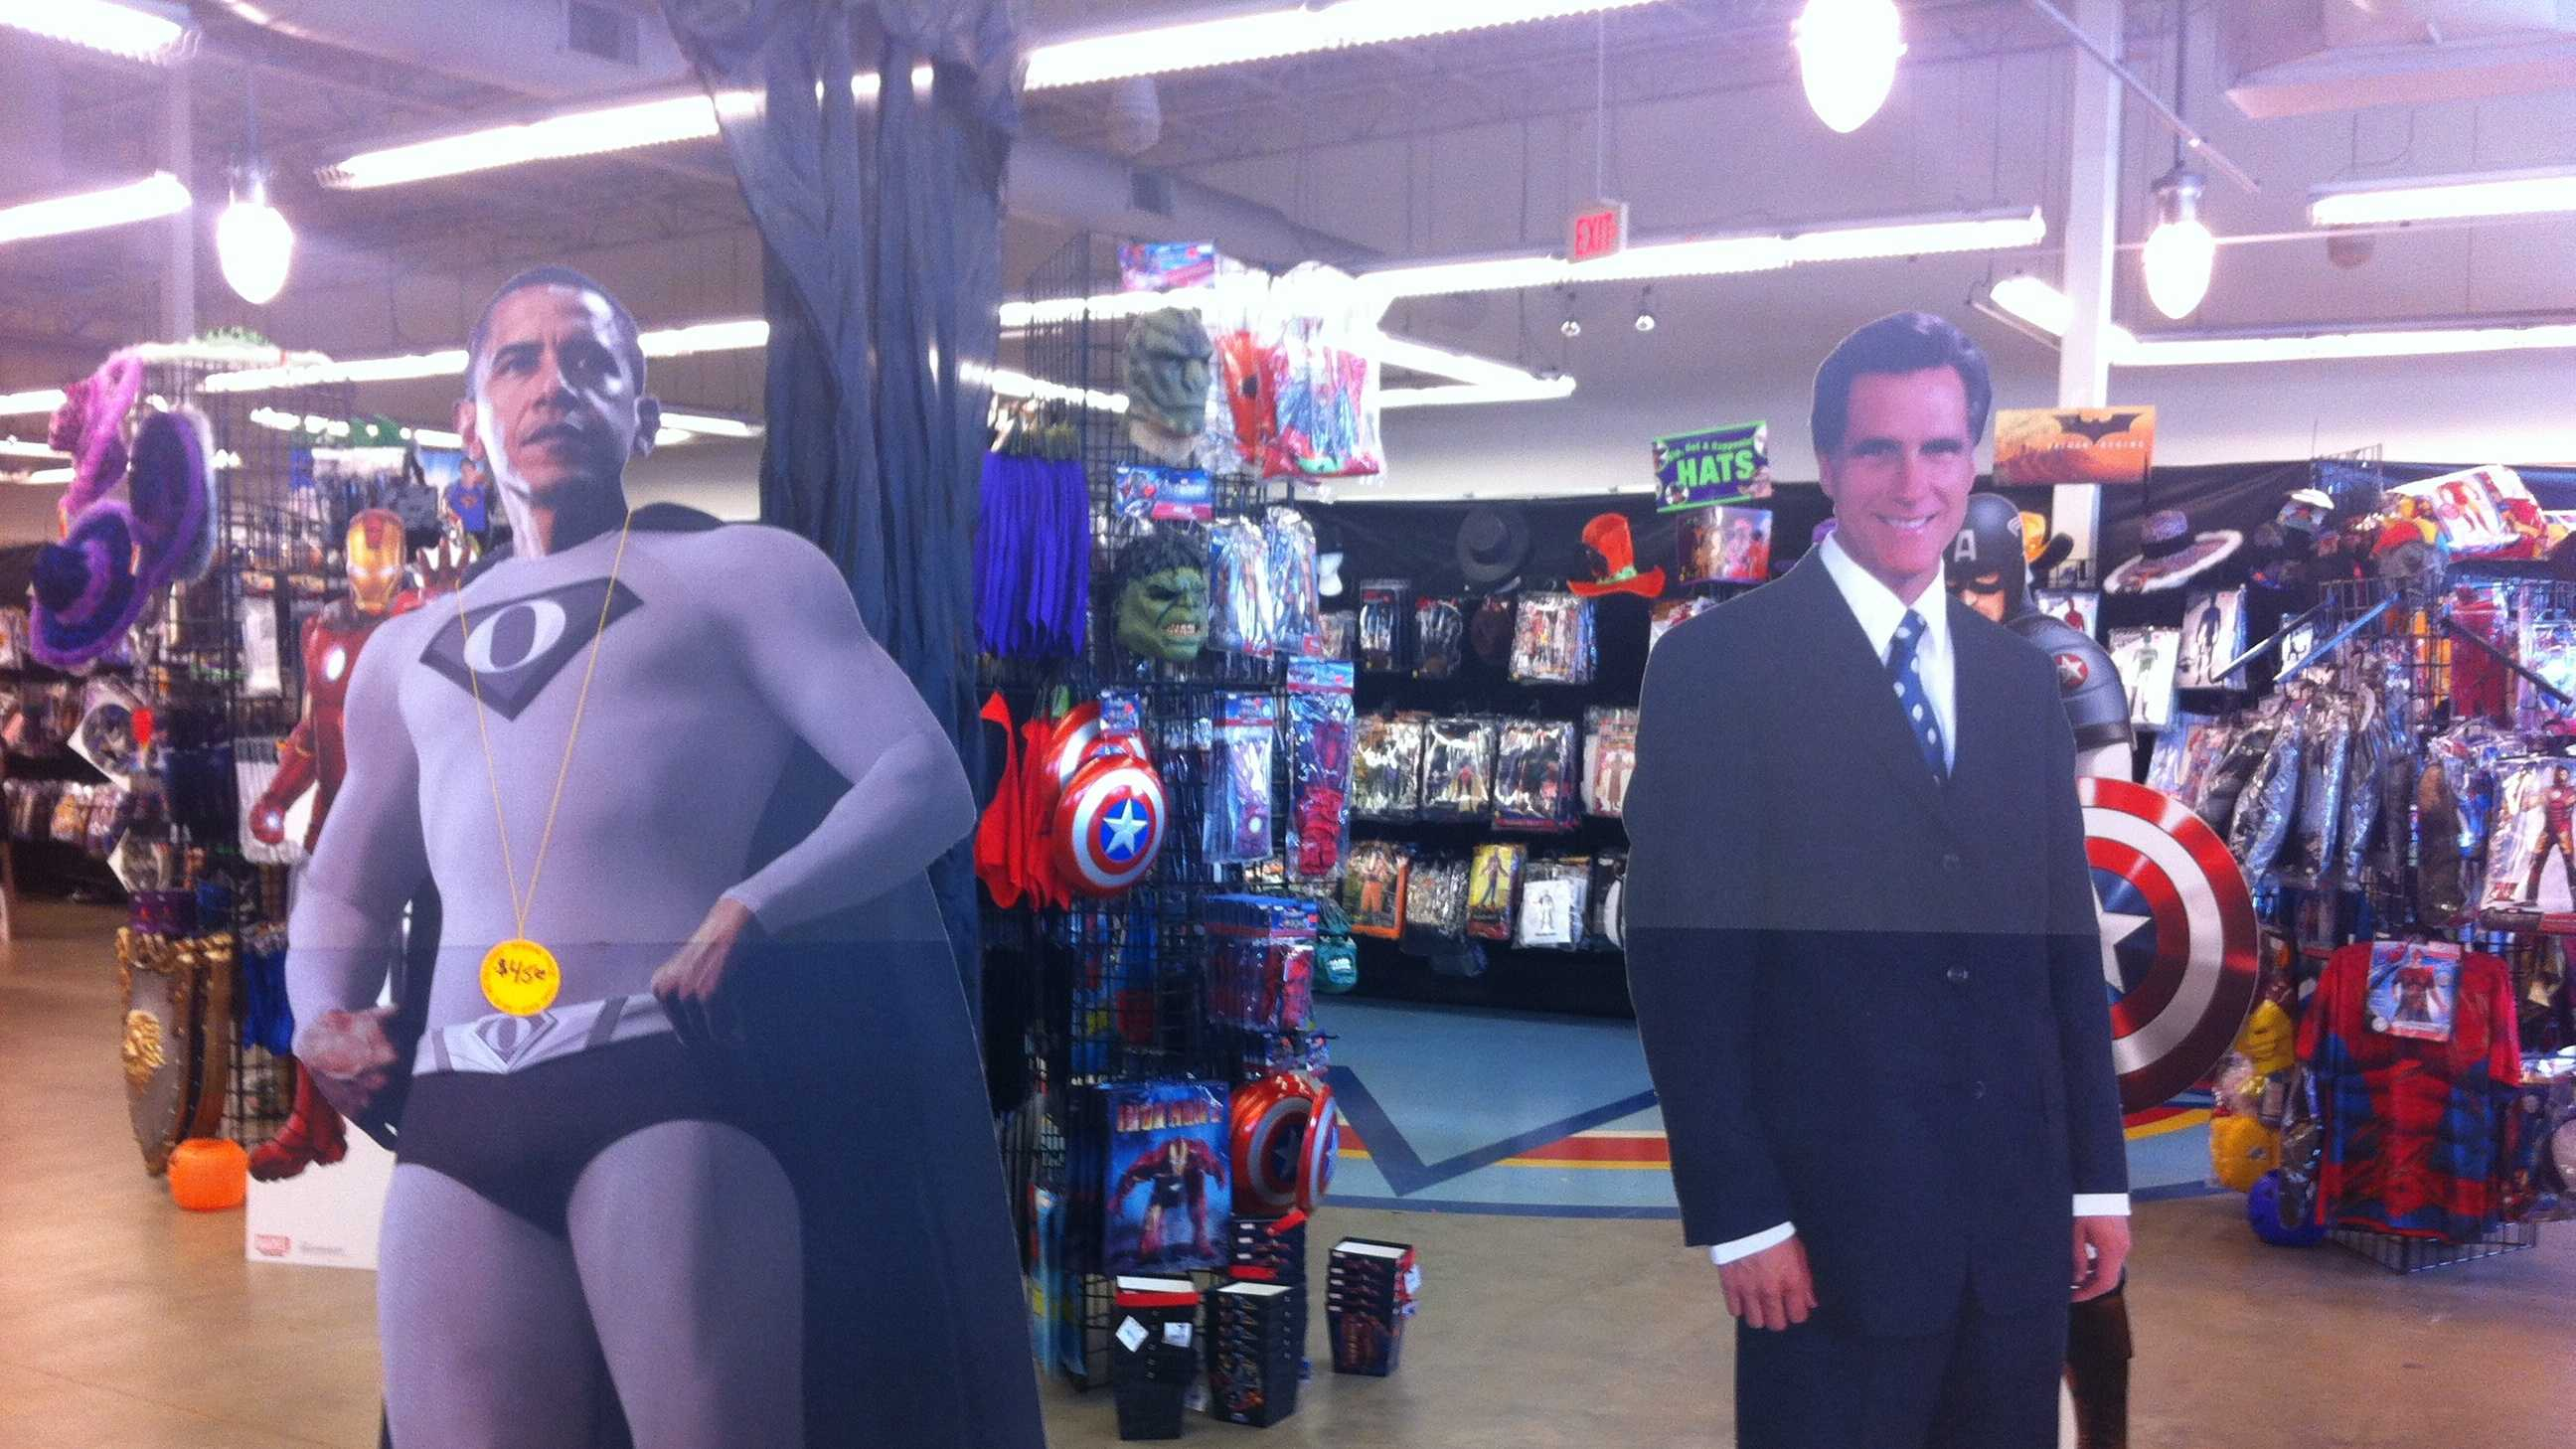 Obama and Biden costumes